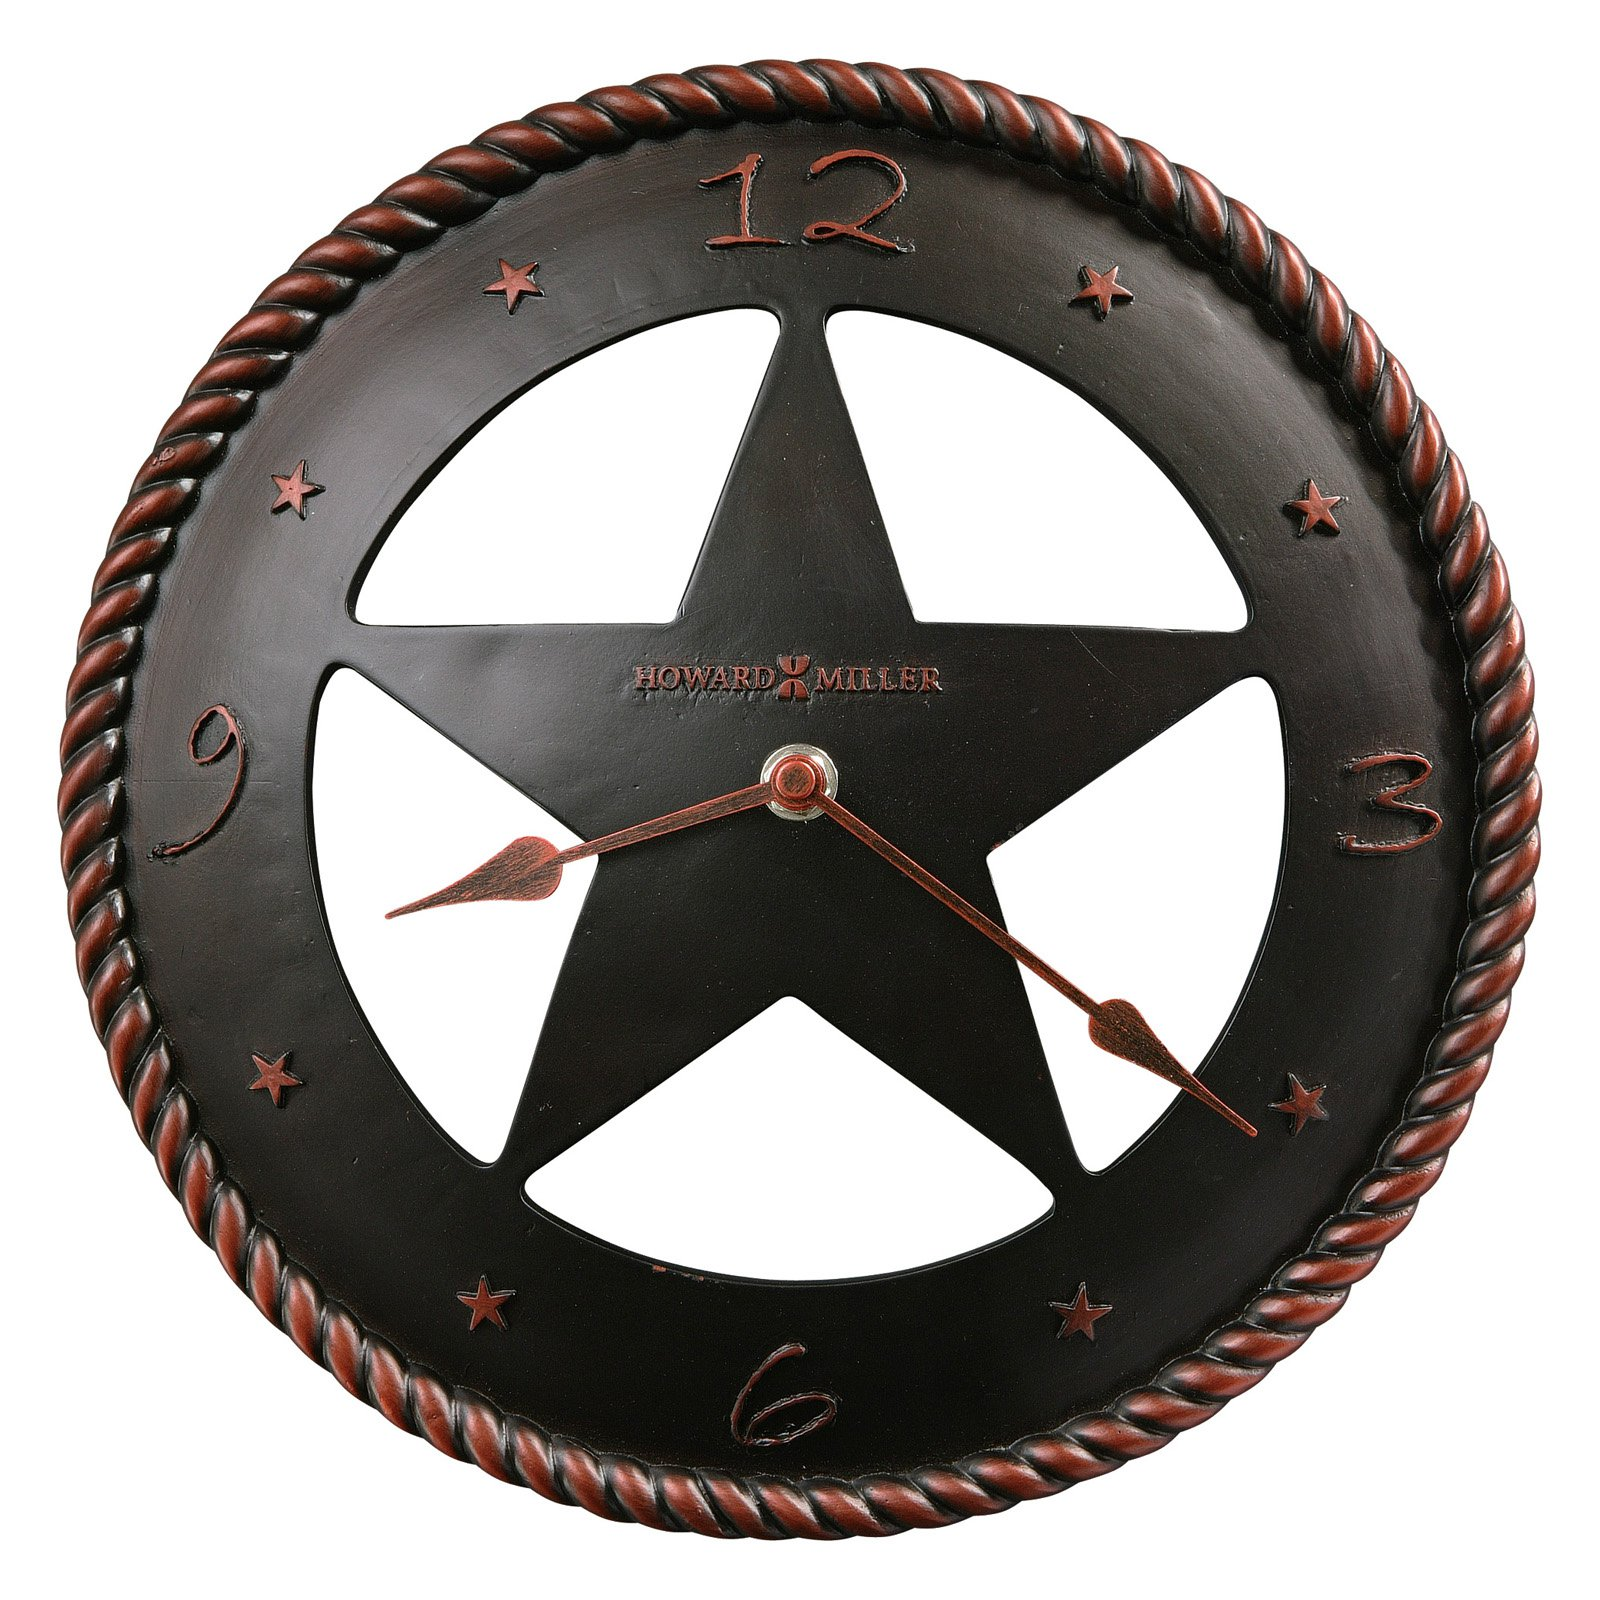 Howard Miller 625-445 Maverick 11-in. Wall Clock by Howard Miller